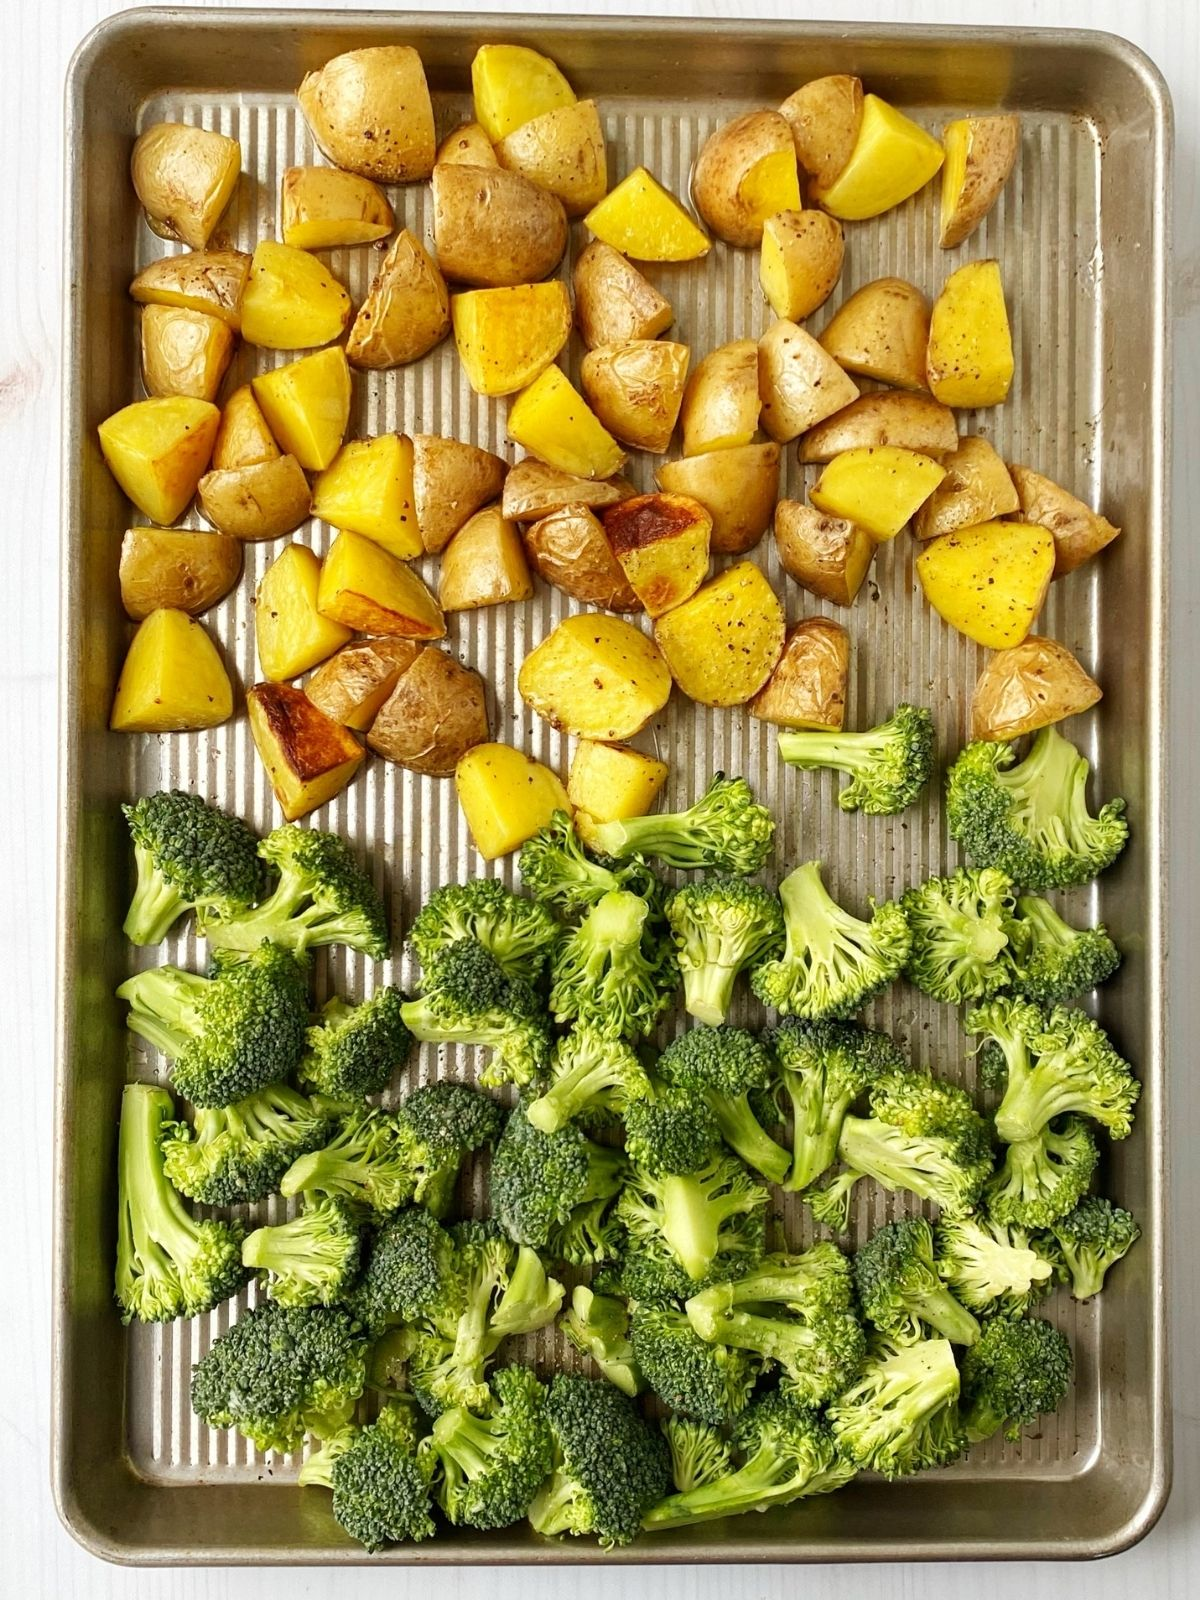 broccoli added to sheet pan with partially roasted potatoes